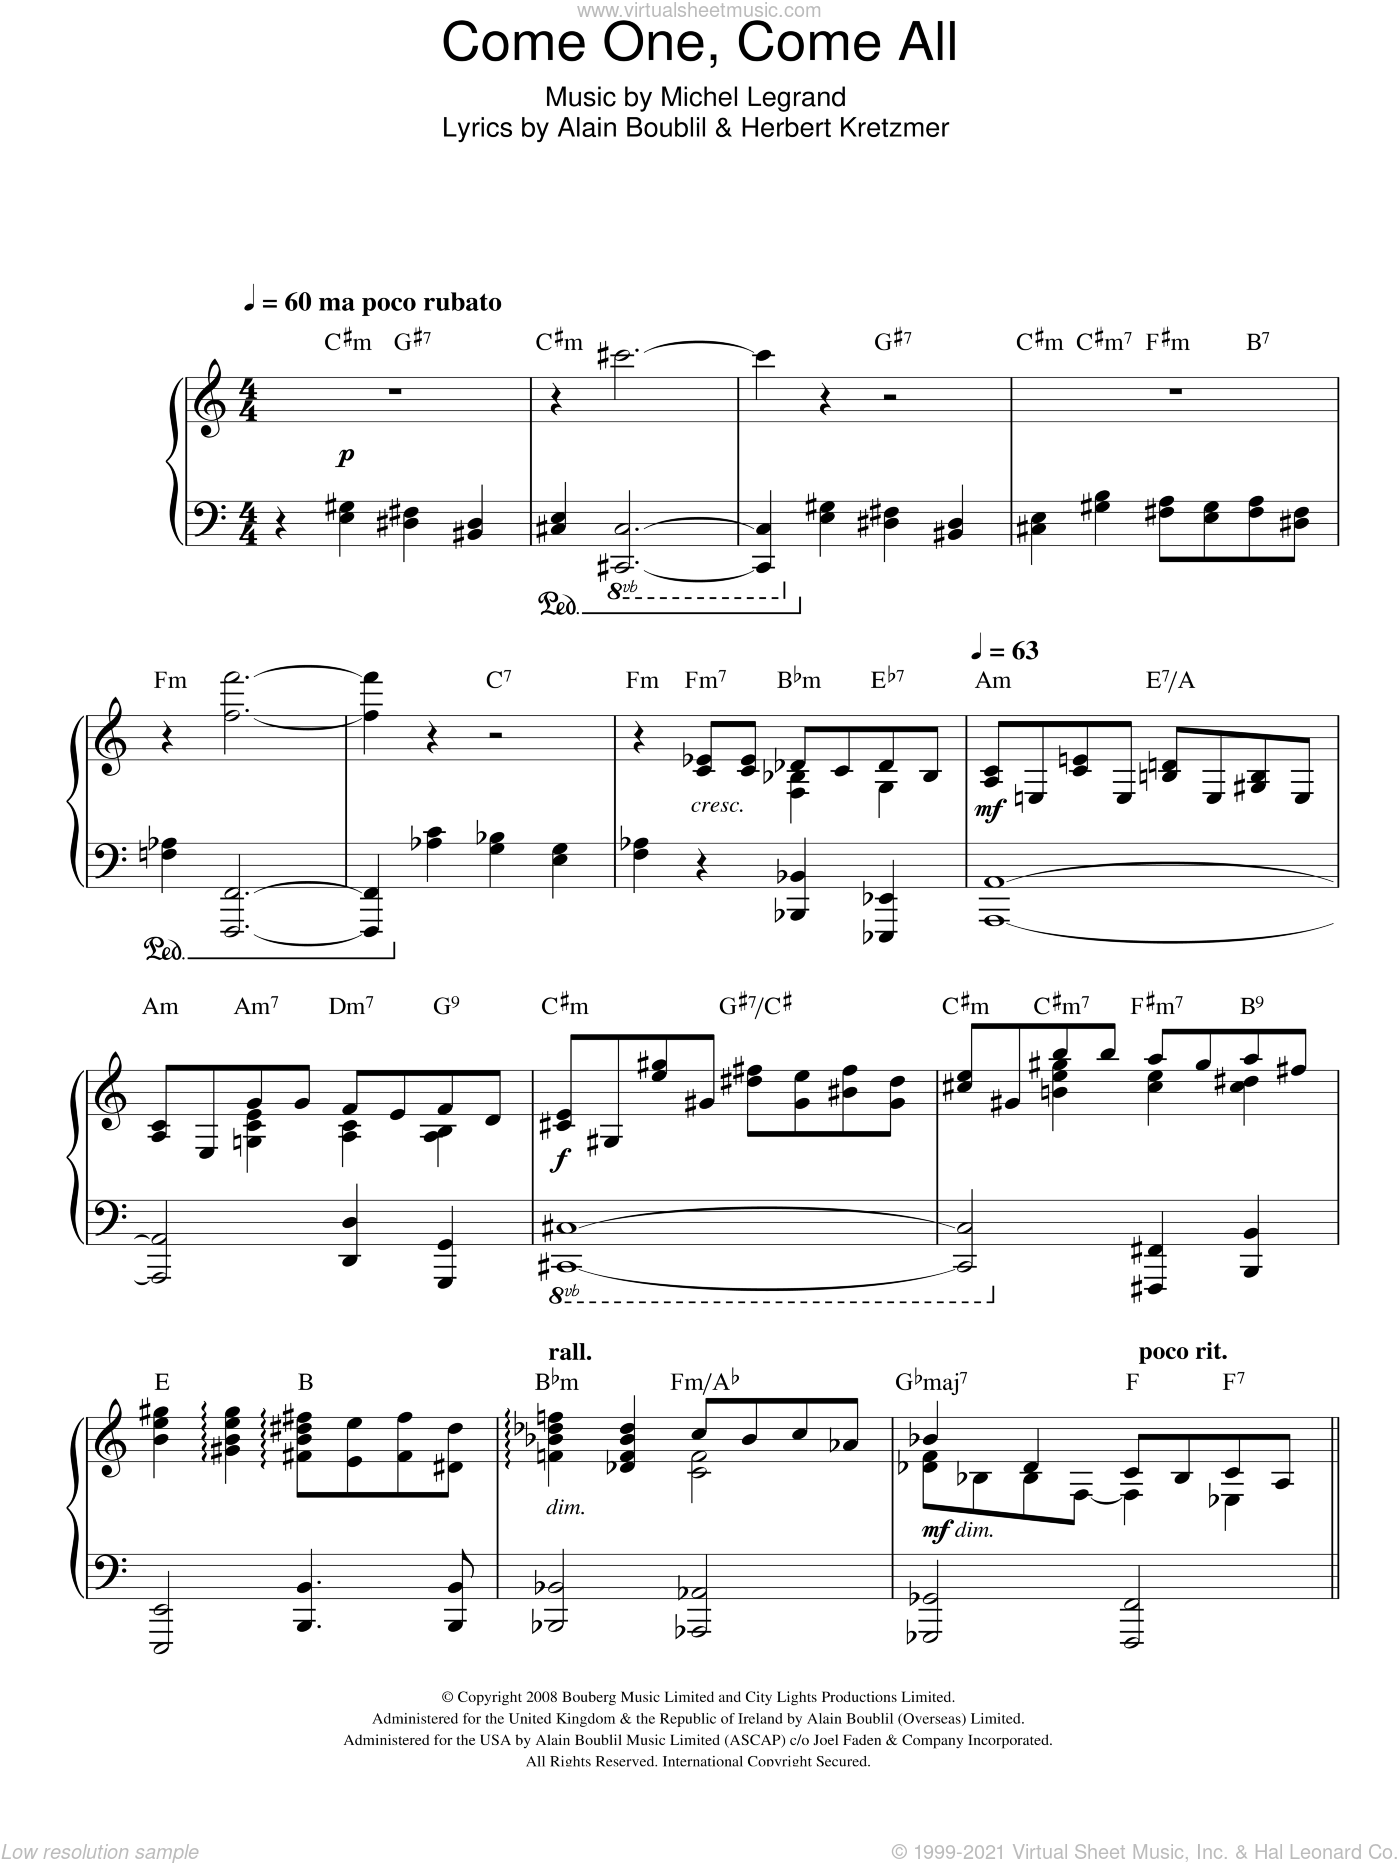 Come One, Come All sheet music for voice, piano or guitar by Herbert Kretzmer, Alain Boublil and Michel LeGrand. Score Image Preview.